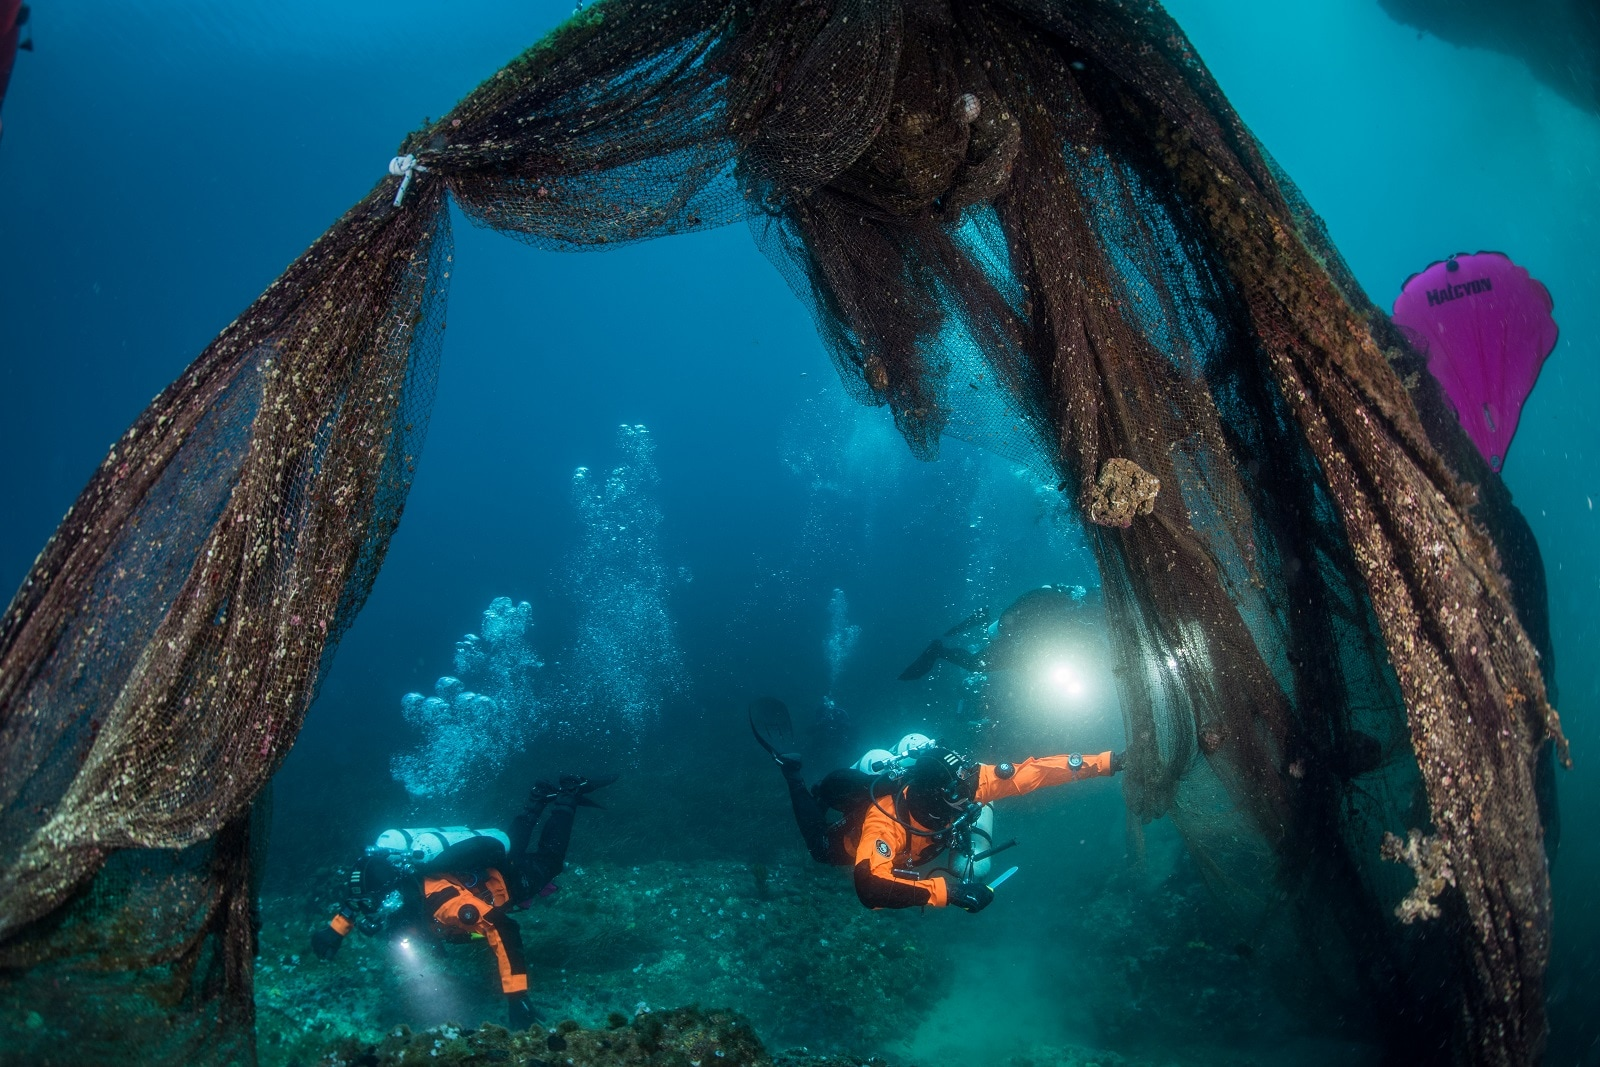 Divers swim between a ghost fishing net on the seabed in the village of Stratoni near Halkidiki, Greece, May 18, 2019. Cor Kuyvenhoven/Ghost Fishing Greece/Handout via REUTERS